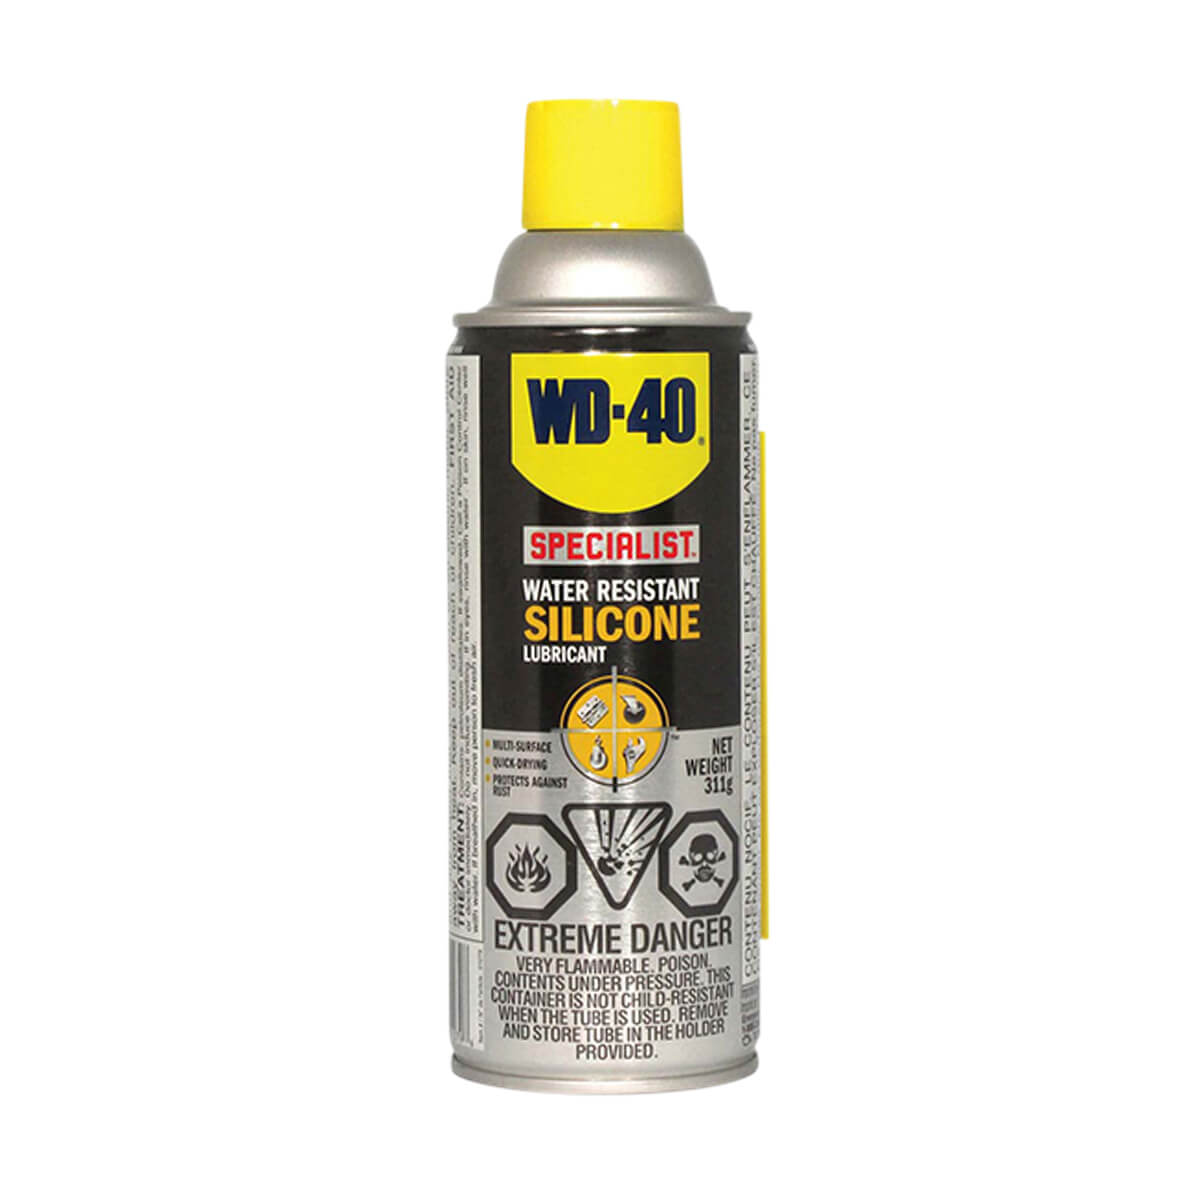 WD-40 Specialist Water Resistant Silicone  - 311 g